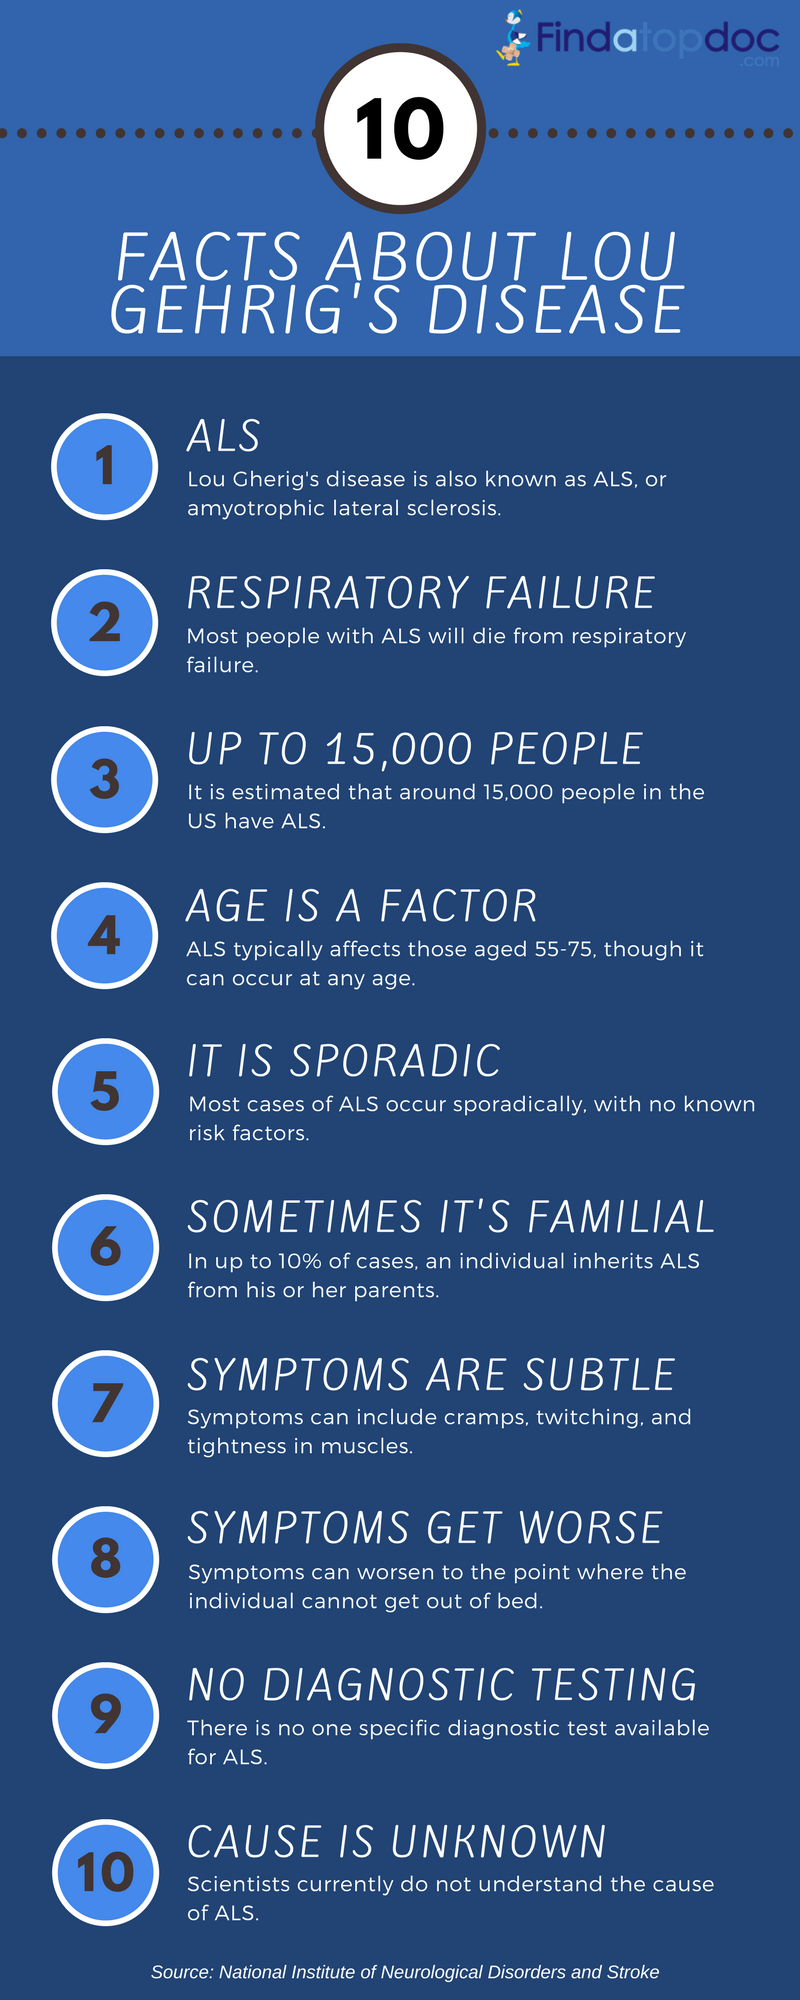 What is (ALS) Amyotrophic Lateral Sclerosis: Common Symptoms